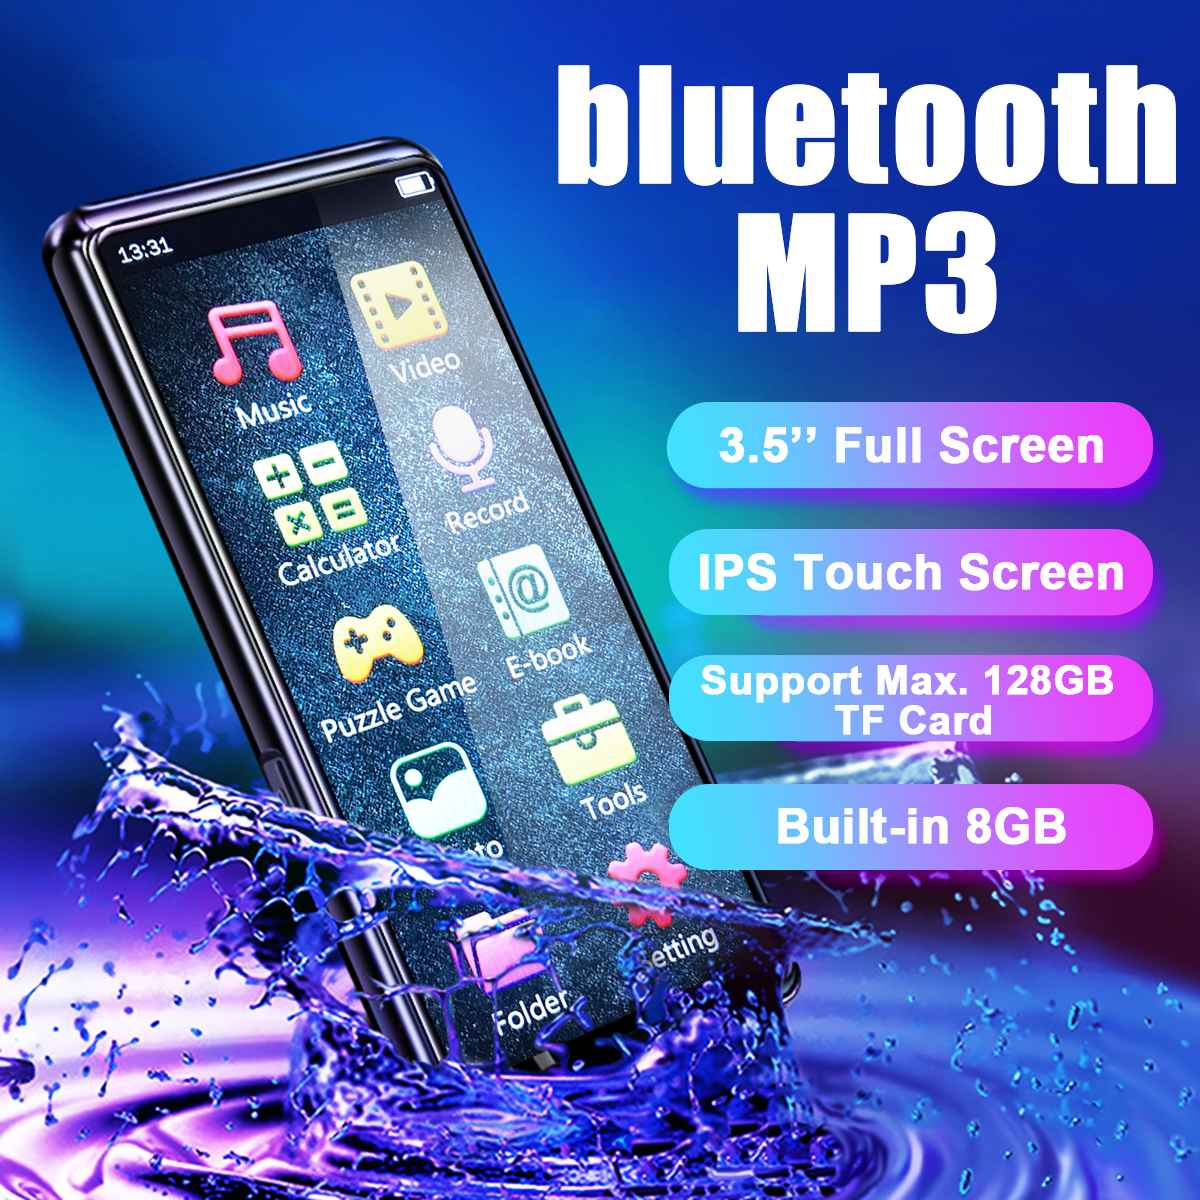 3,5 zoll Touch Screen bluetooth Hifi <font><b>MP3</b></font> Musik <font><b>Player</b></font> Video Voice <font><b>Recorder</b></font> FM Radio gebaut in 8GB Lautsprecher up tp 128GB TF Karte image